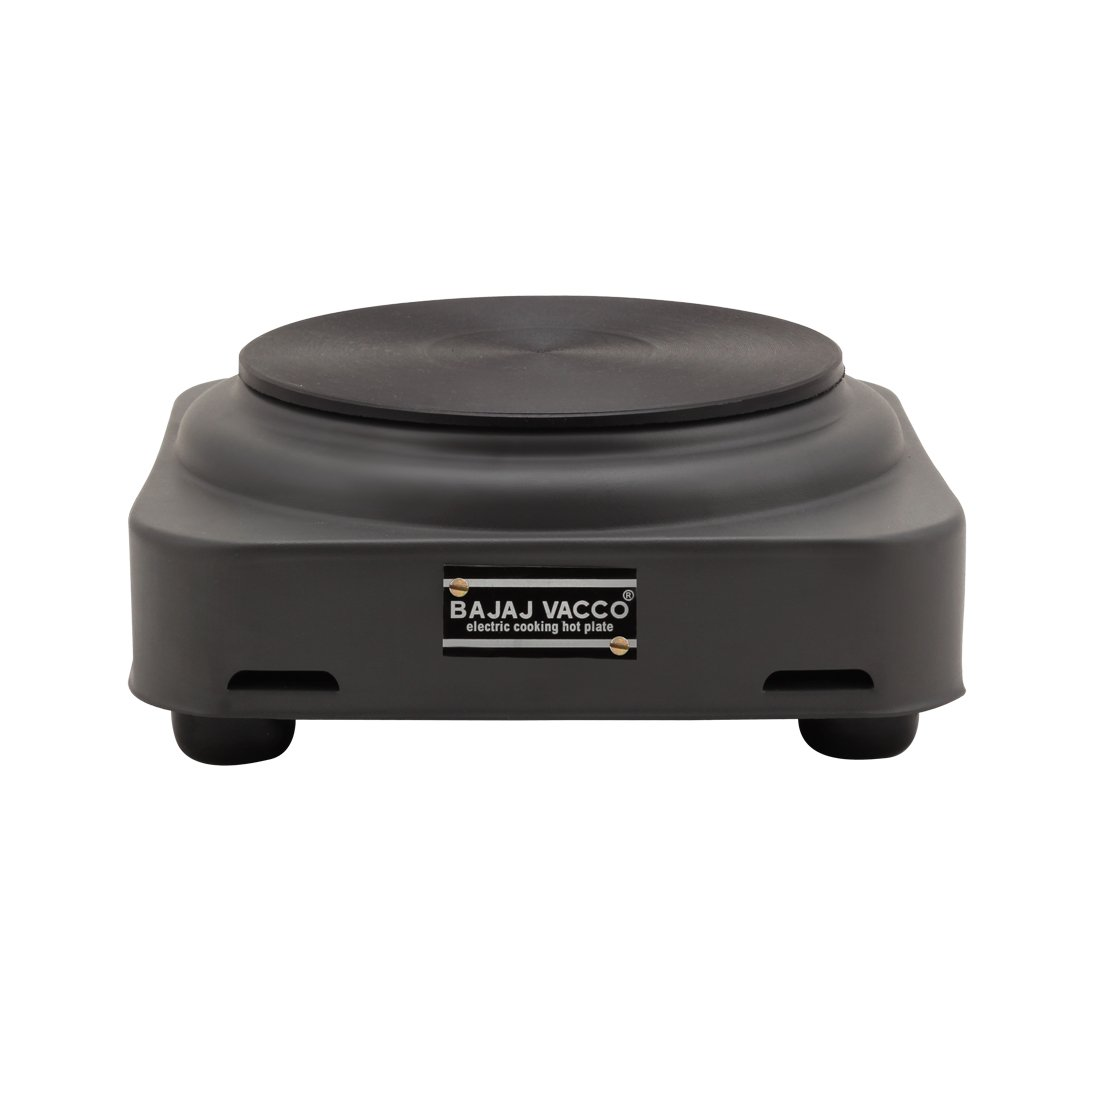 Buy Bajaj Vacco Electric Tawa Hot Plate 1000 Watt Pc W O Reg Black Electrical Wiring Viva Questions Online At Low Prices In India